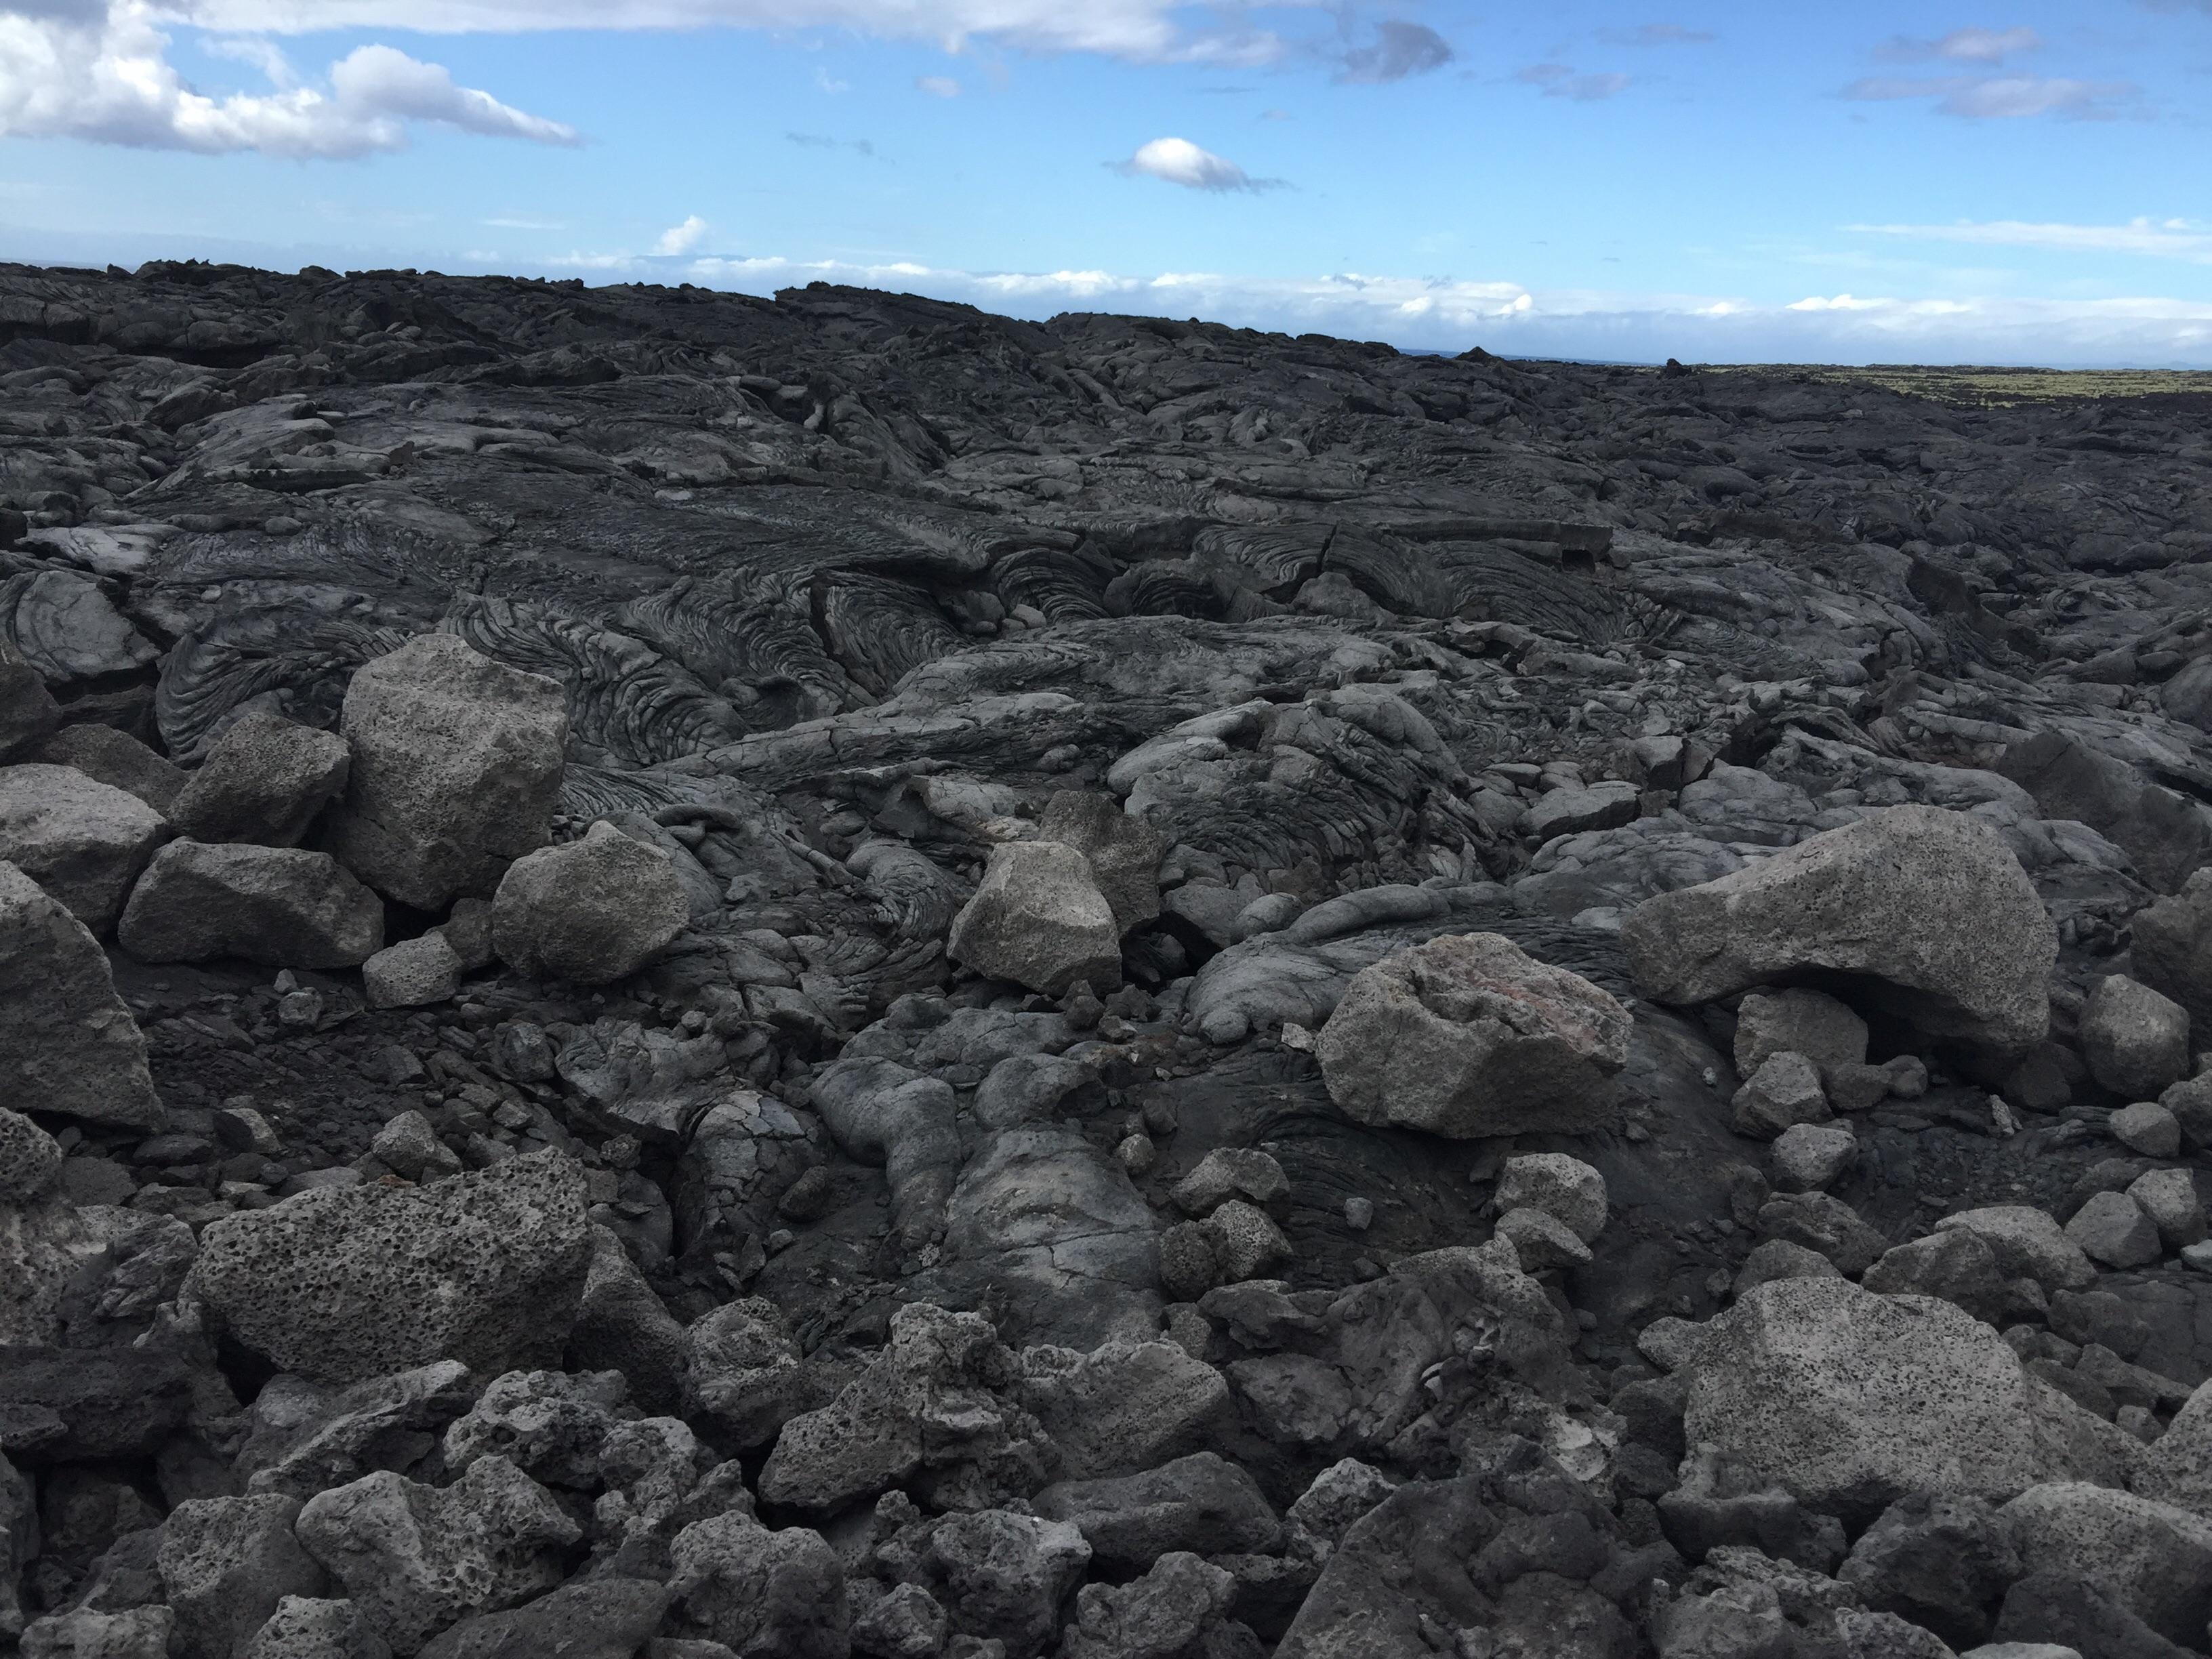 Kekaha Kai Beach park. All lava rock on a rough road which would be best traversed with a